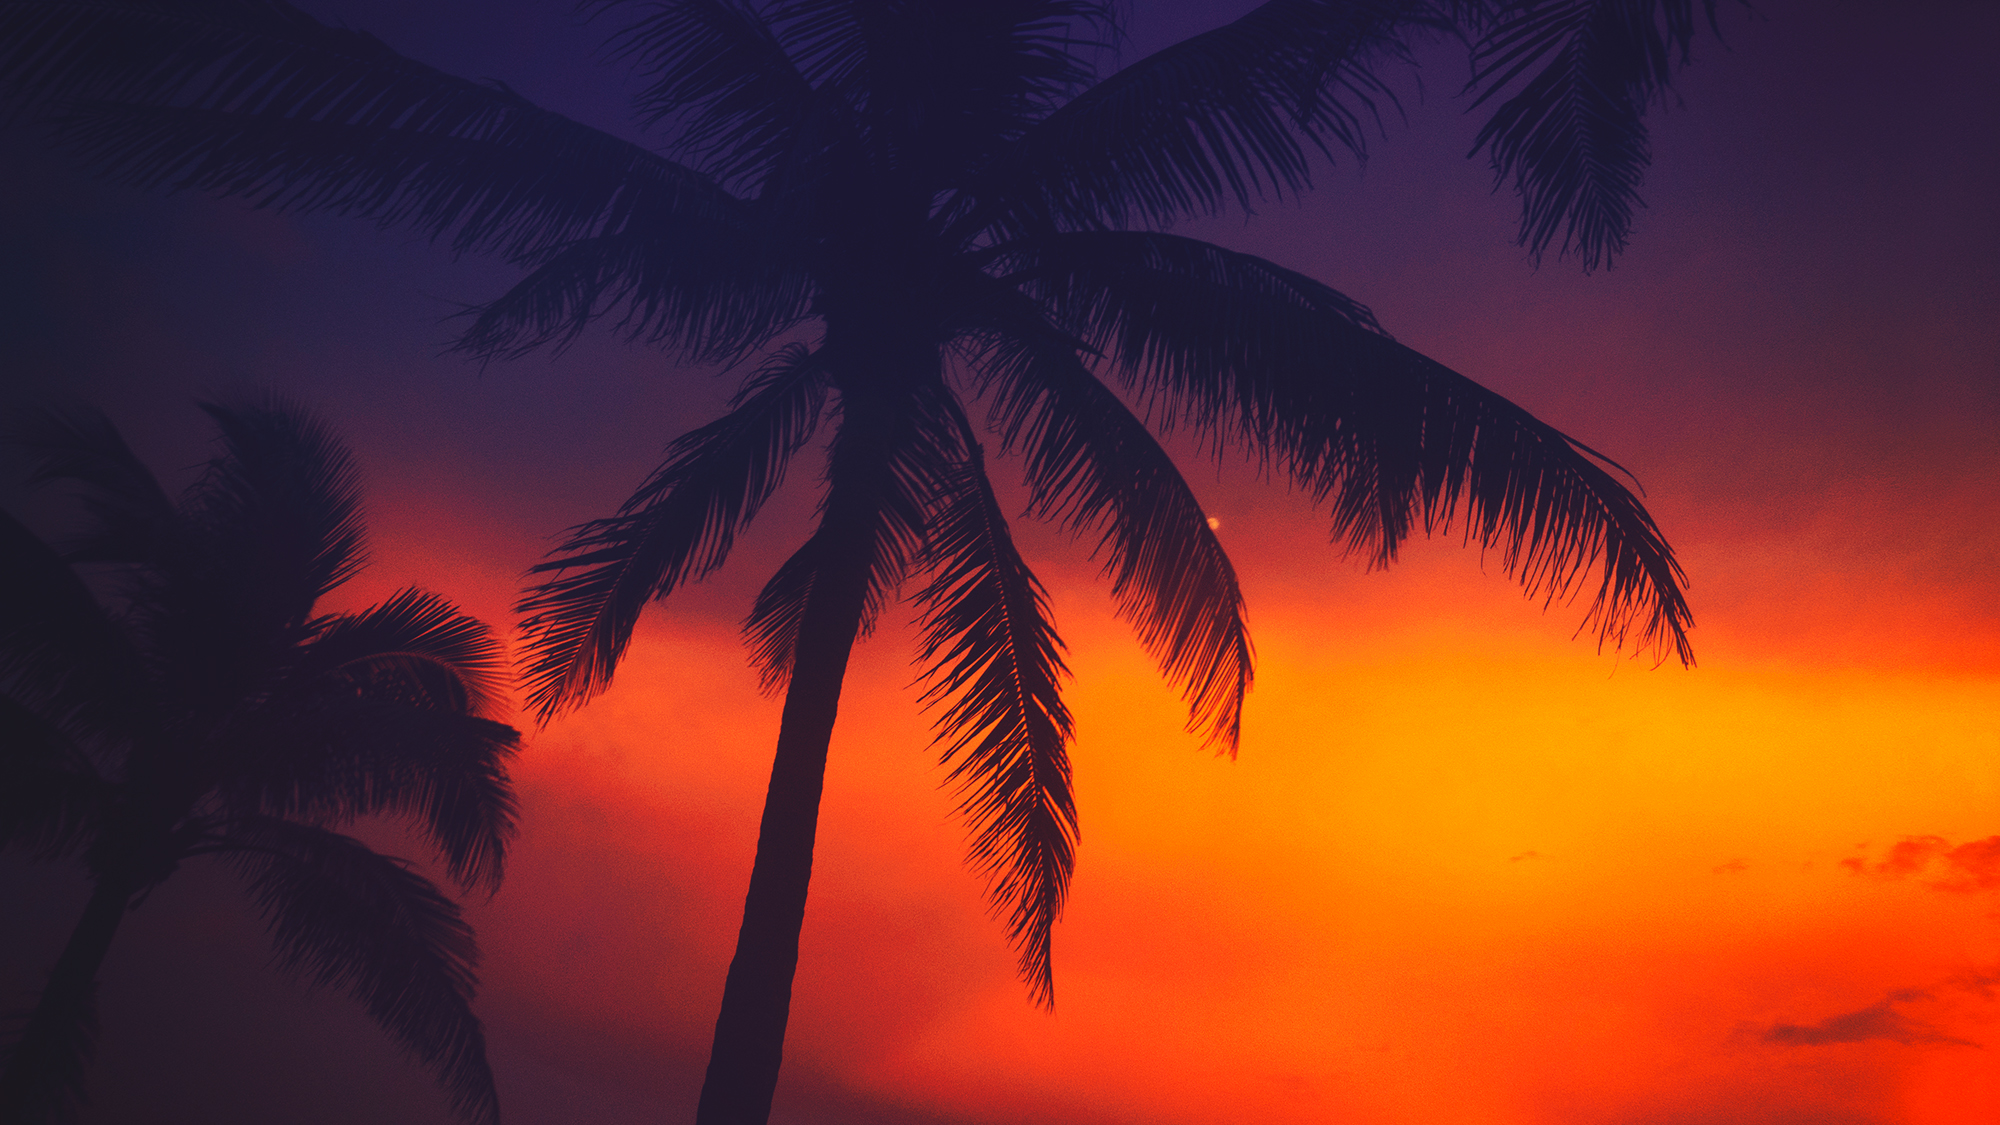 Palm tree with dramatic sunset in Miami